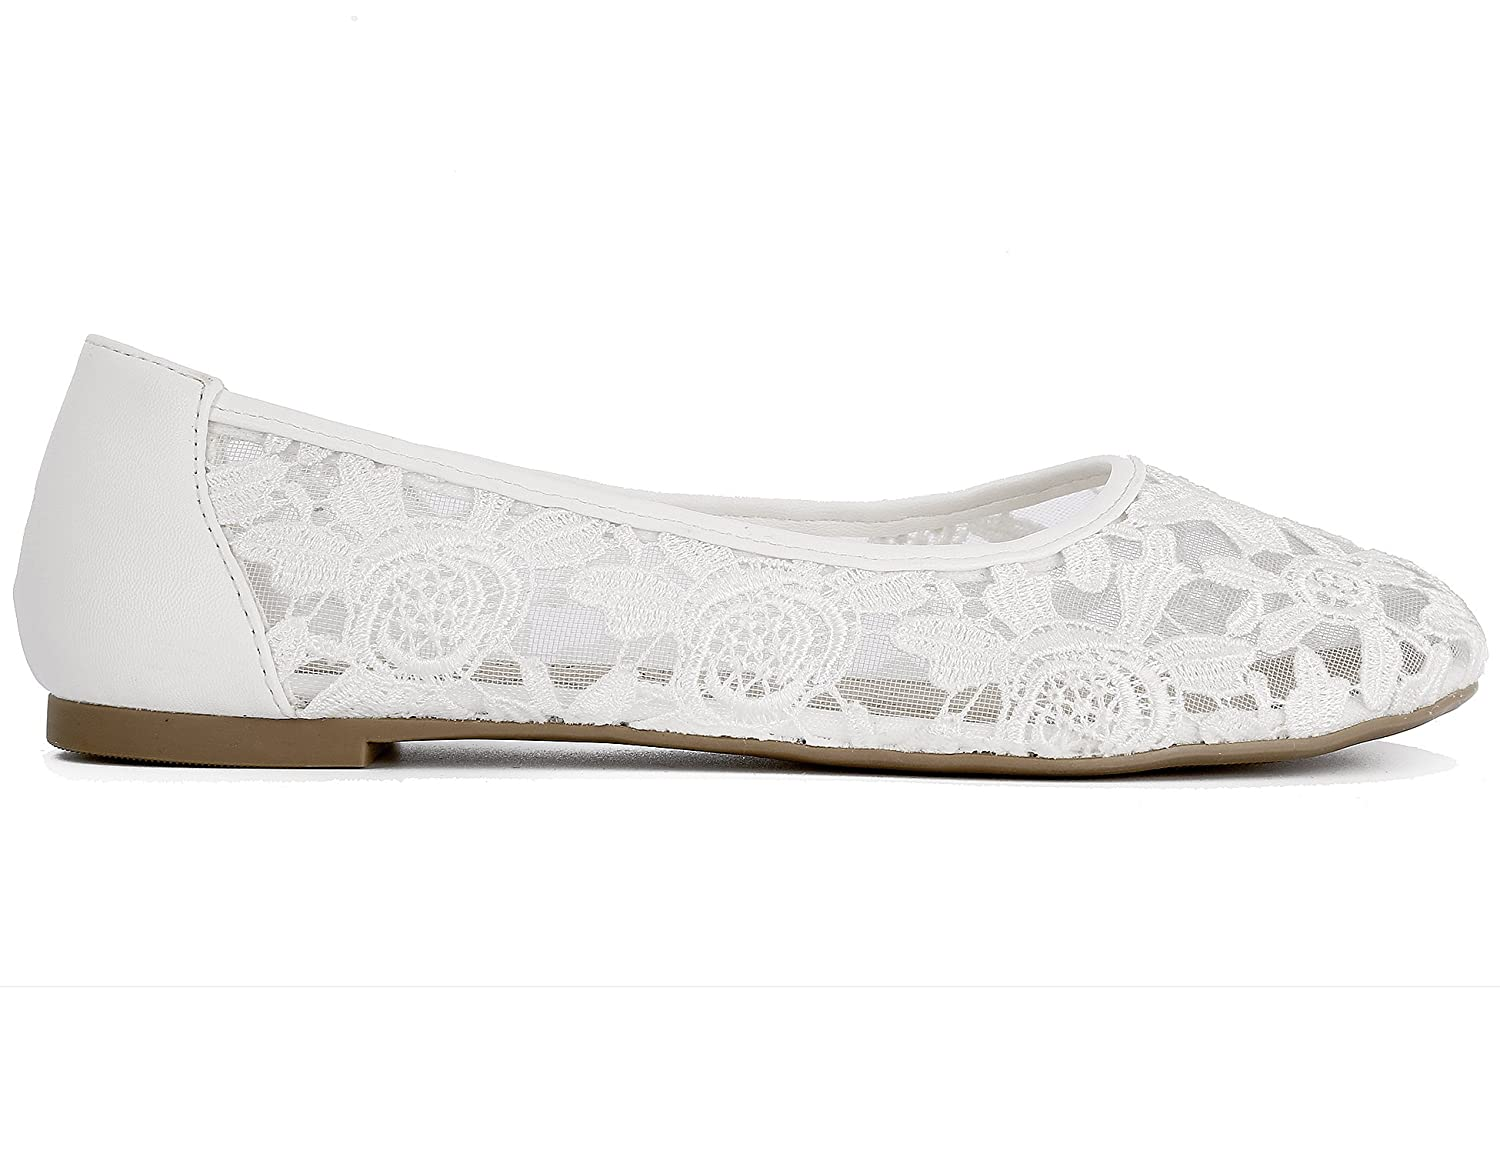 Greatonu Women Shoes Cut Out Slip On Synthetic Lace Ballet Flats B072BYYK14 10 US/41 EU|White